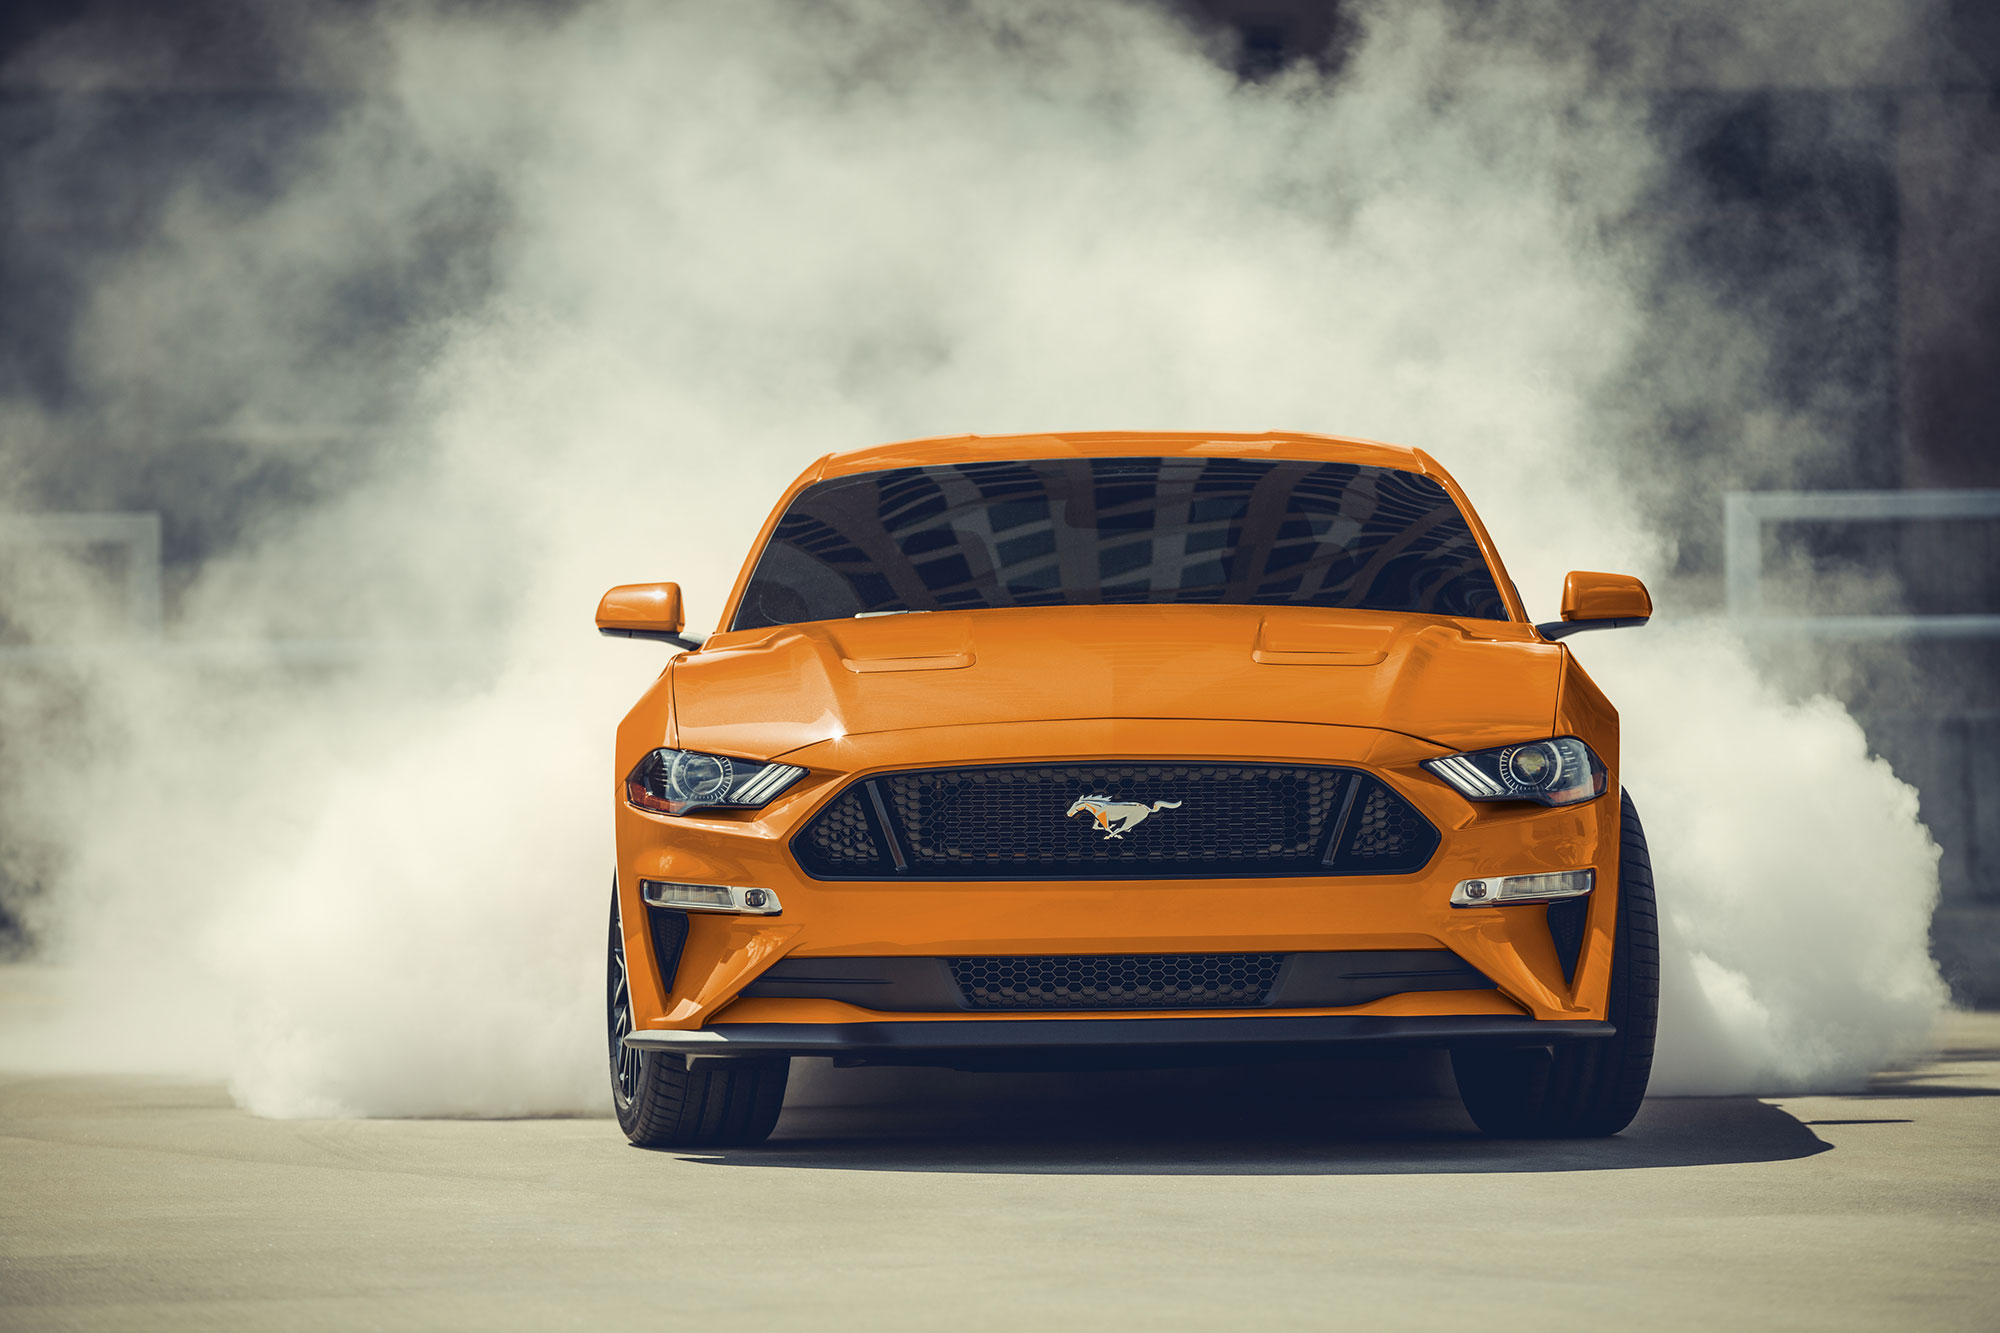 2021 Mustang GT doing a burn out